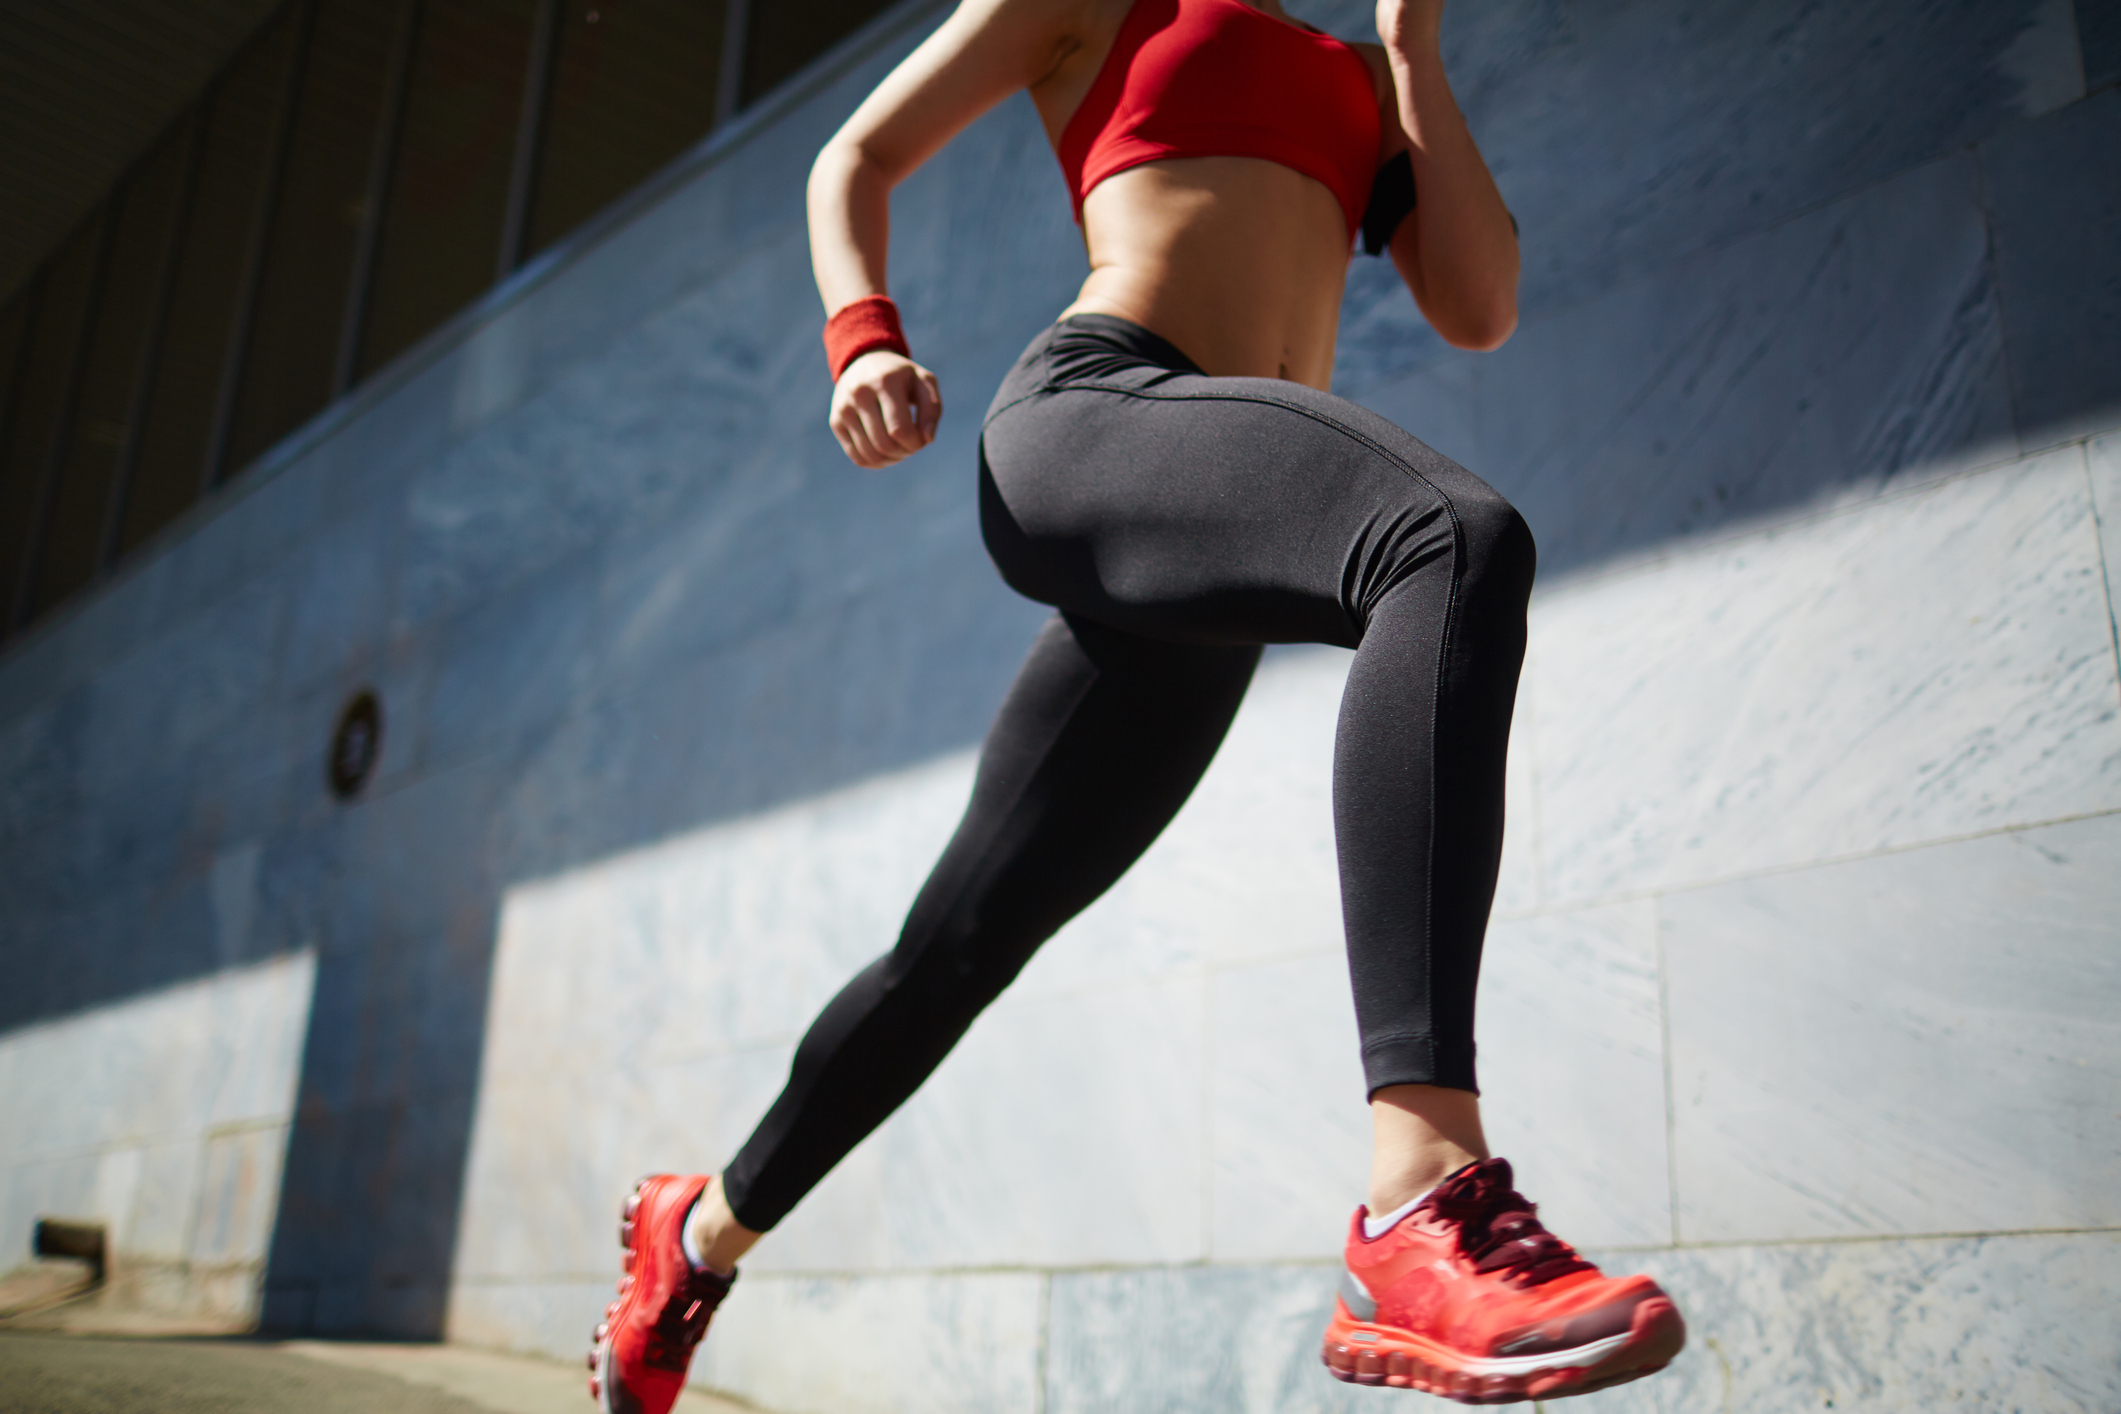 woman running HIIT exercise workout